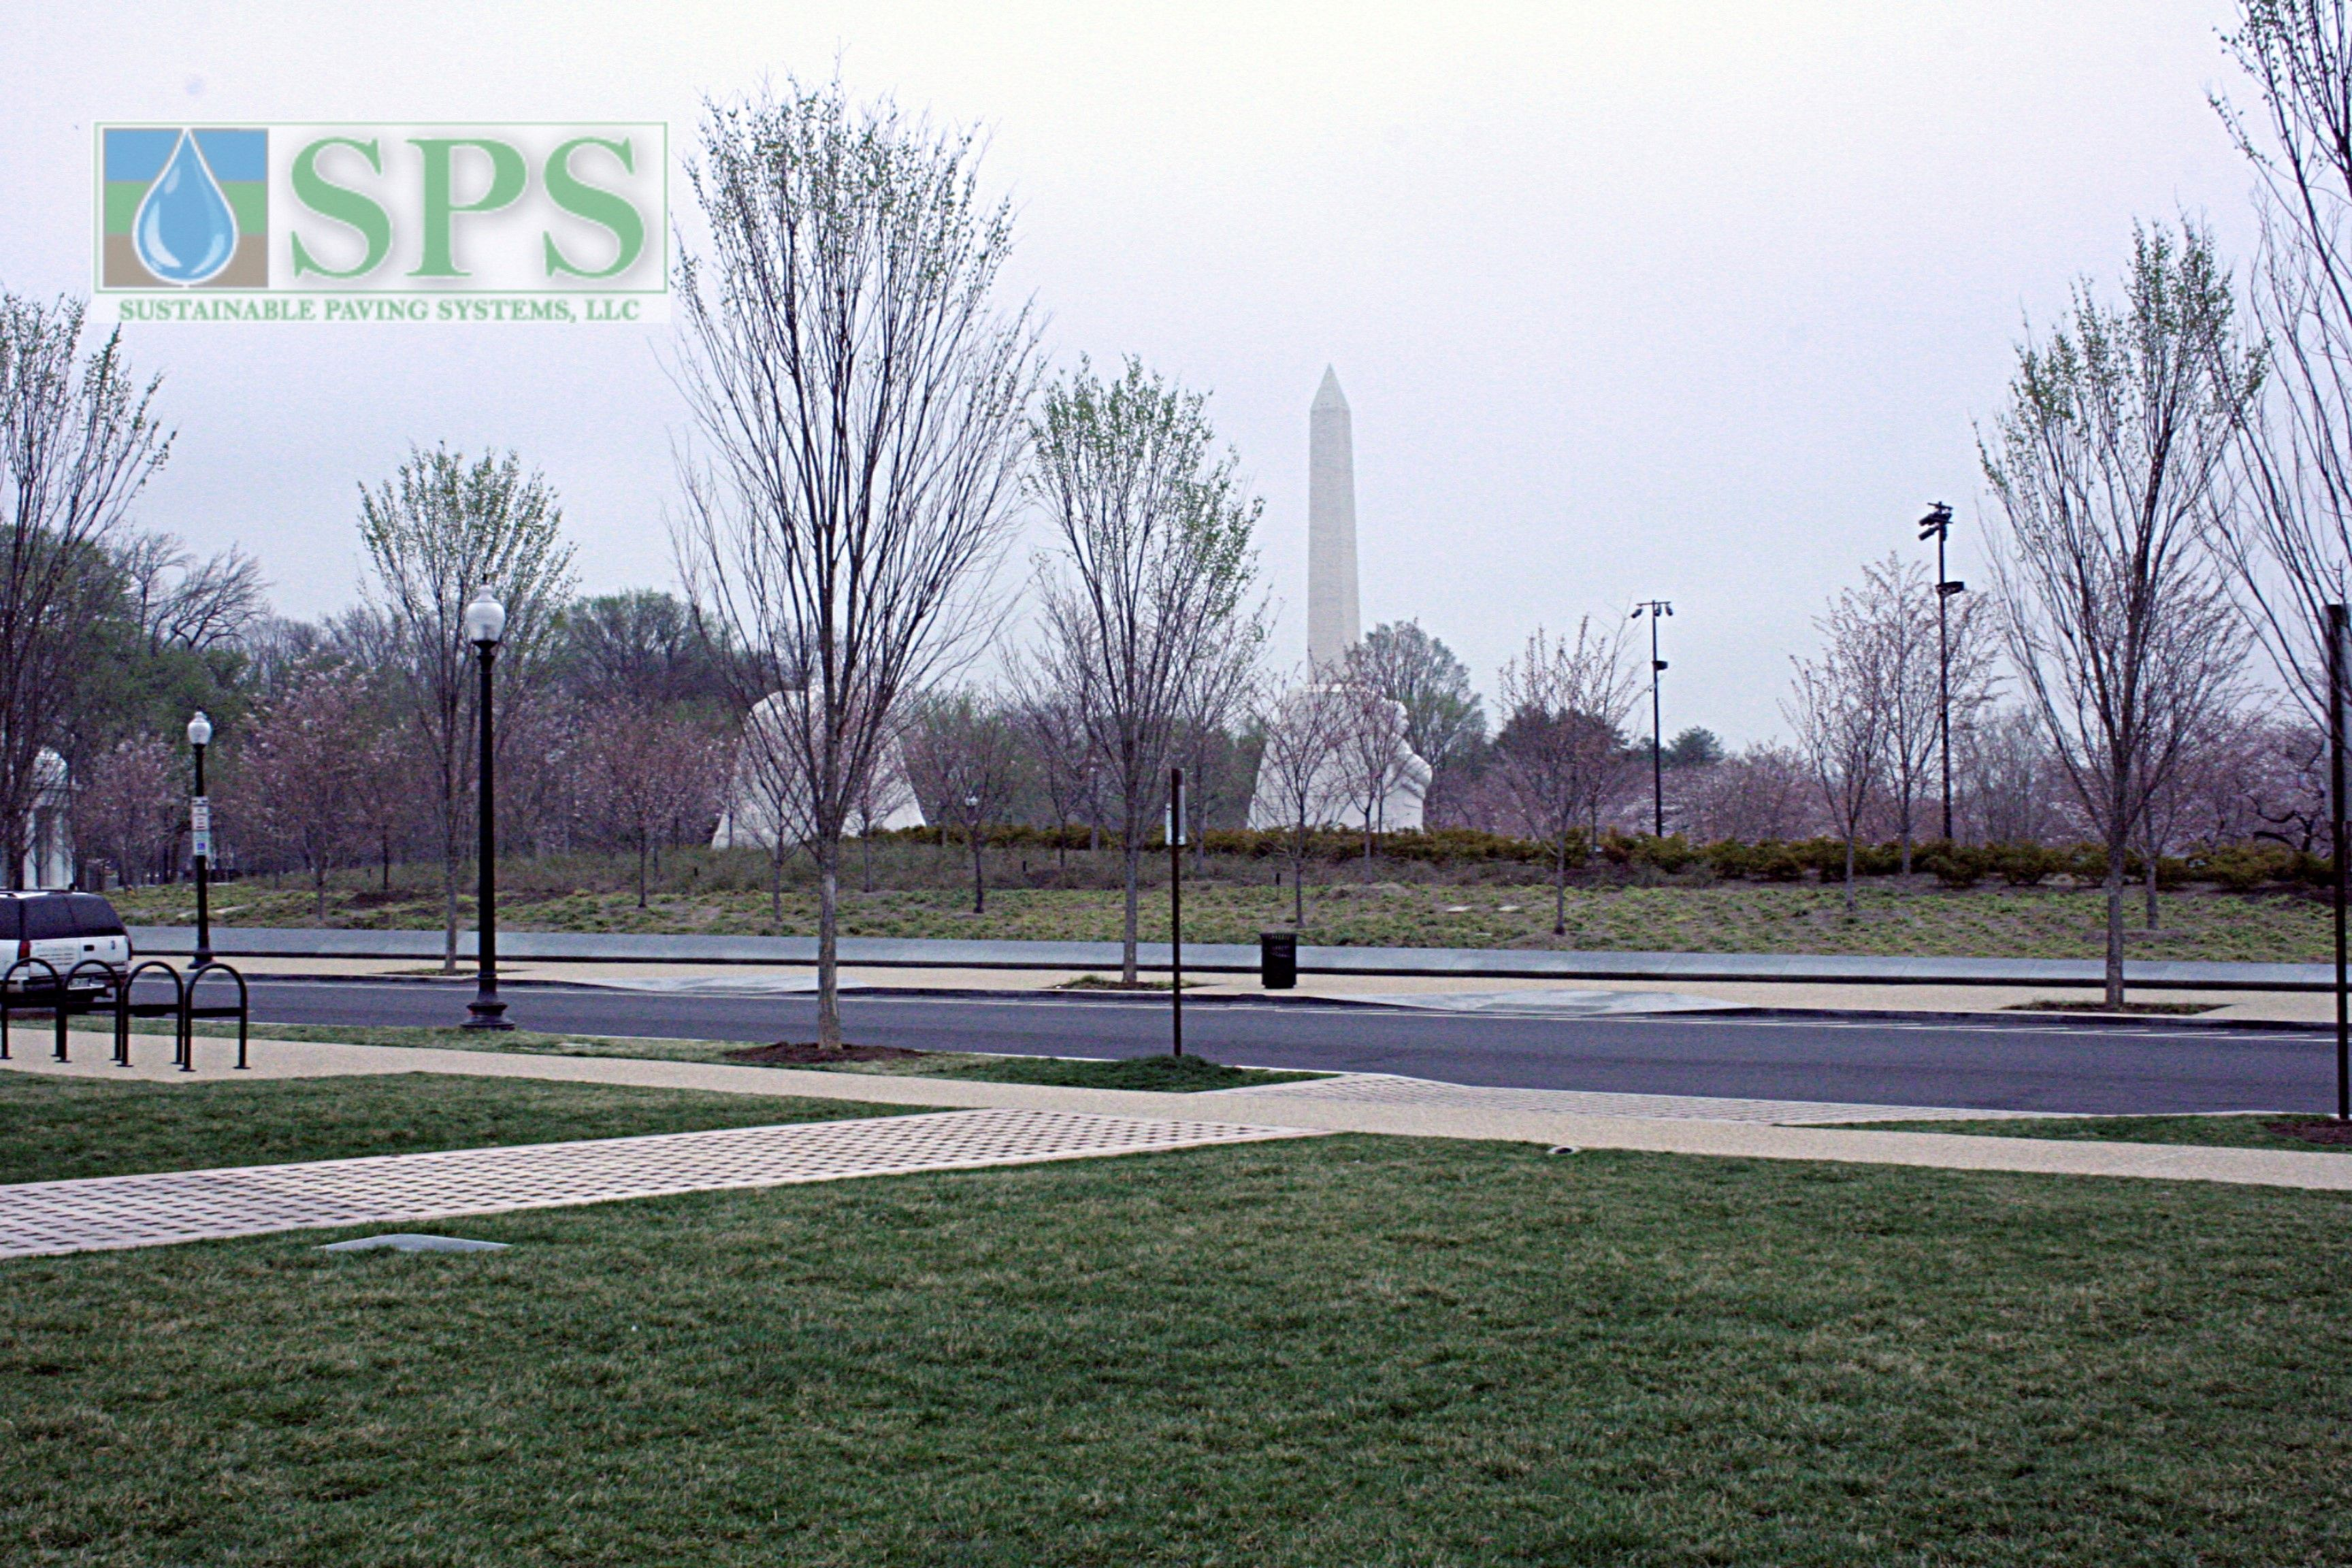 Grasscrete Partially Conceealed System At Mlk National Memorial View Of Vehicle Access_14